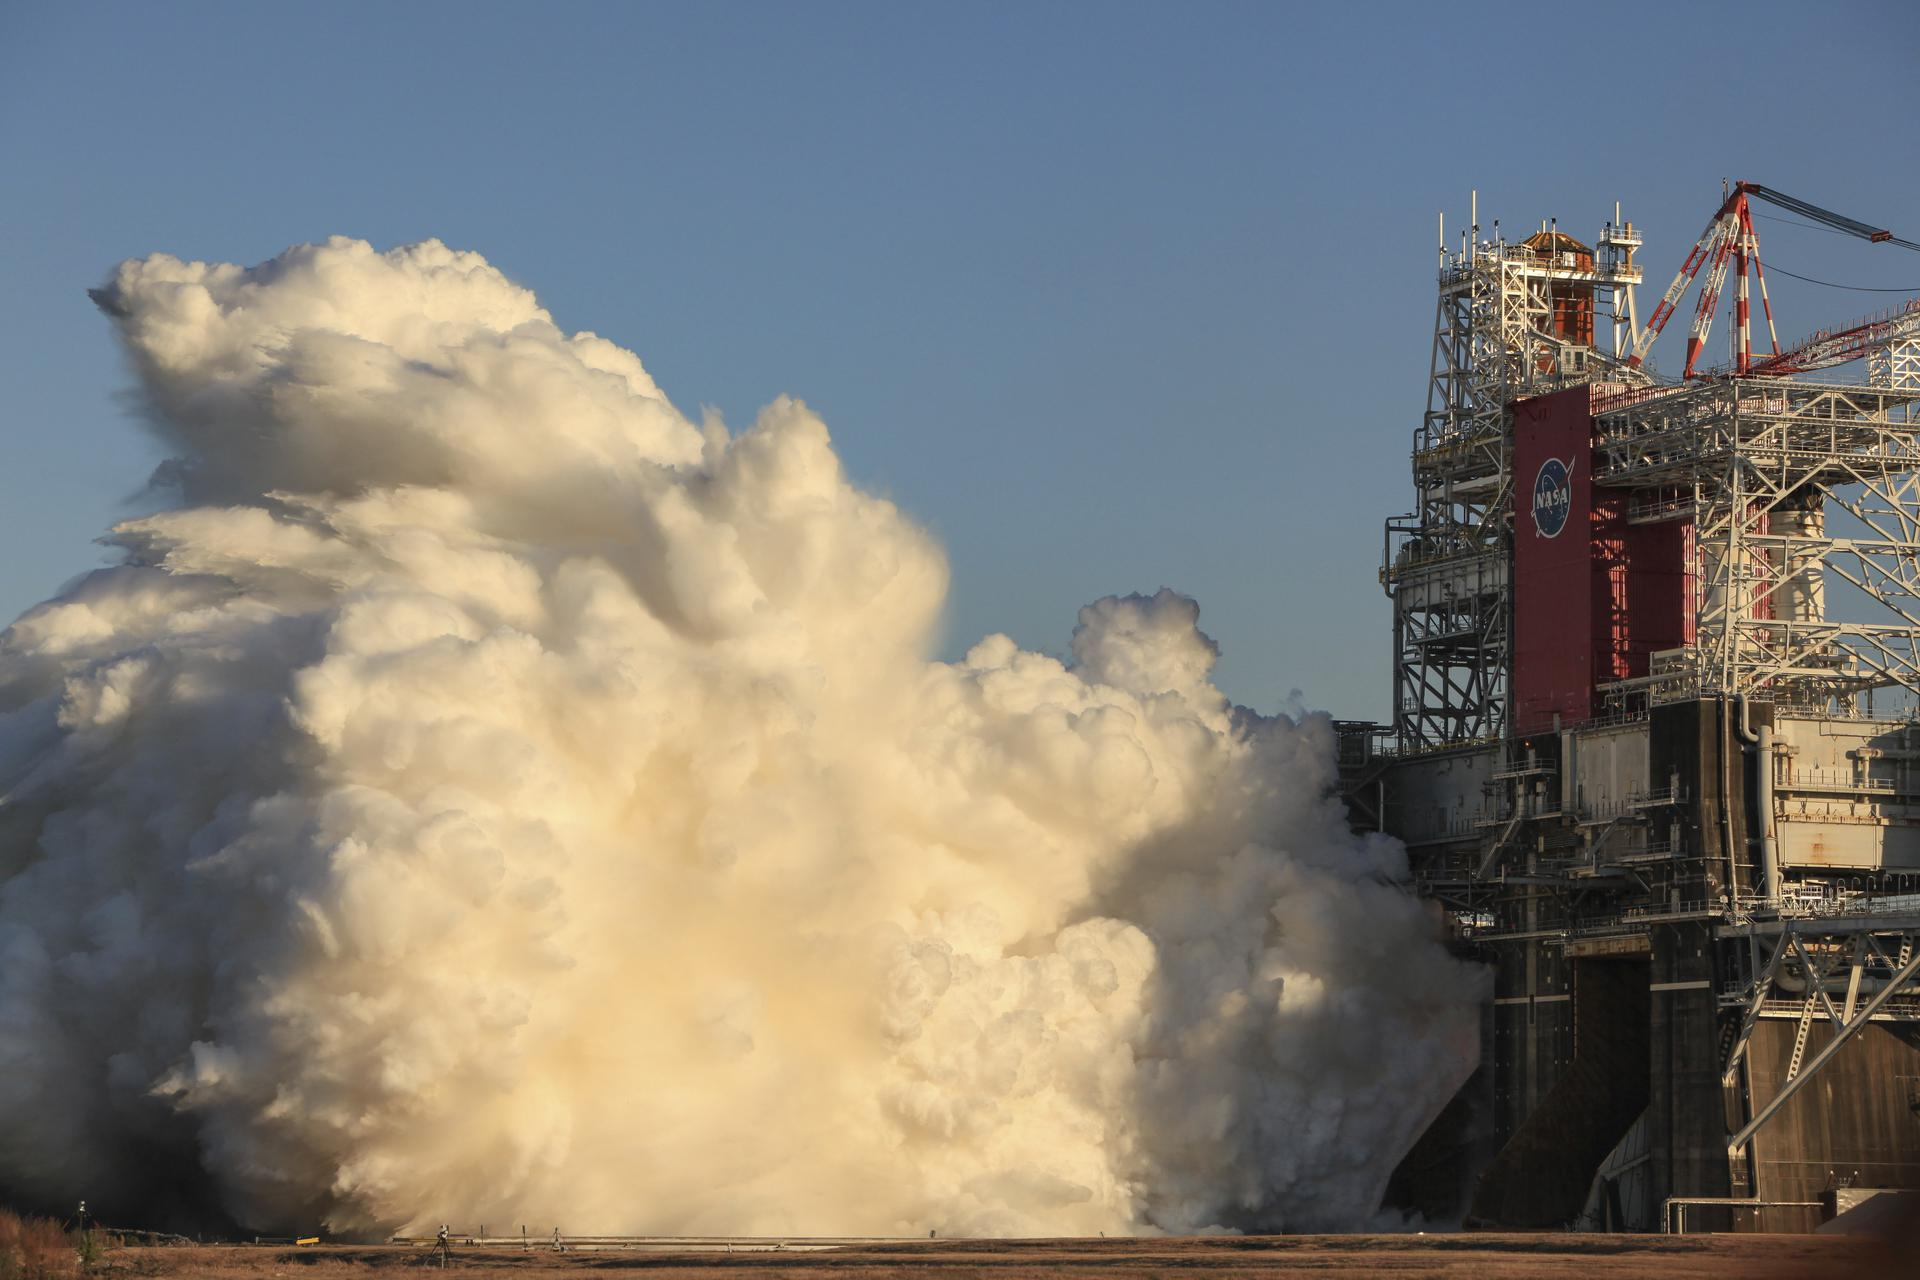 NASA Decides to Perform 2nd SLS Green Run Hot Fire Test Late February